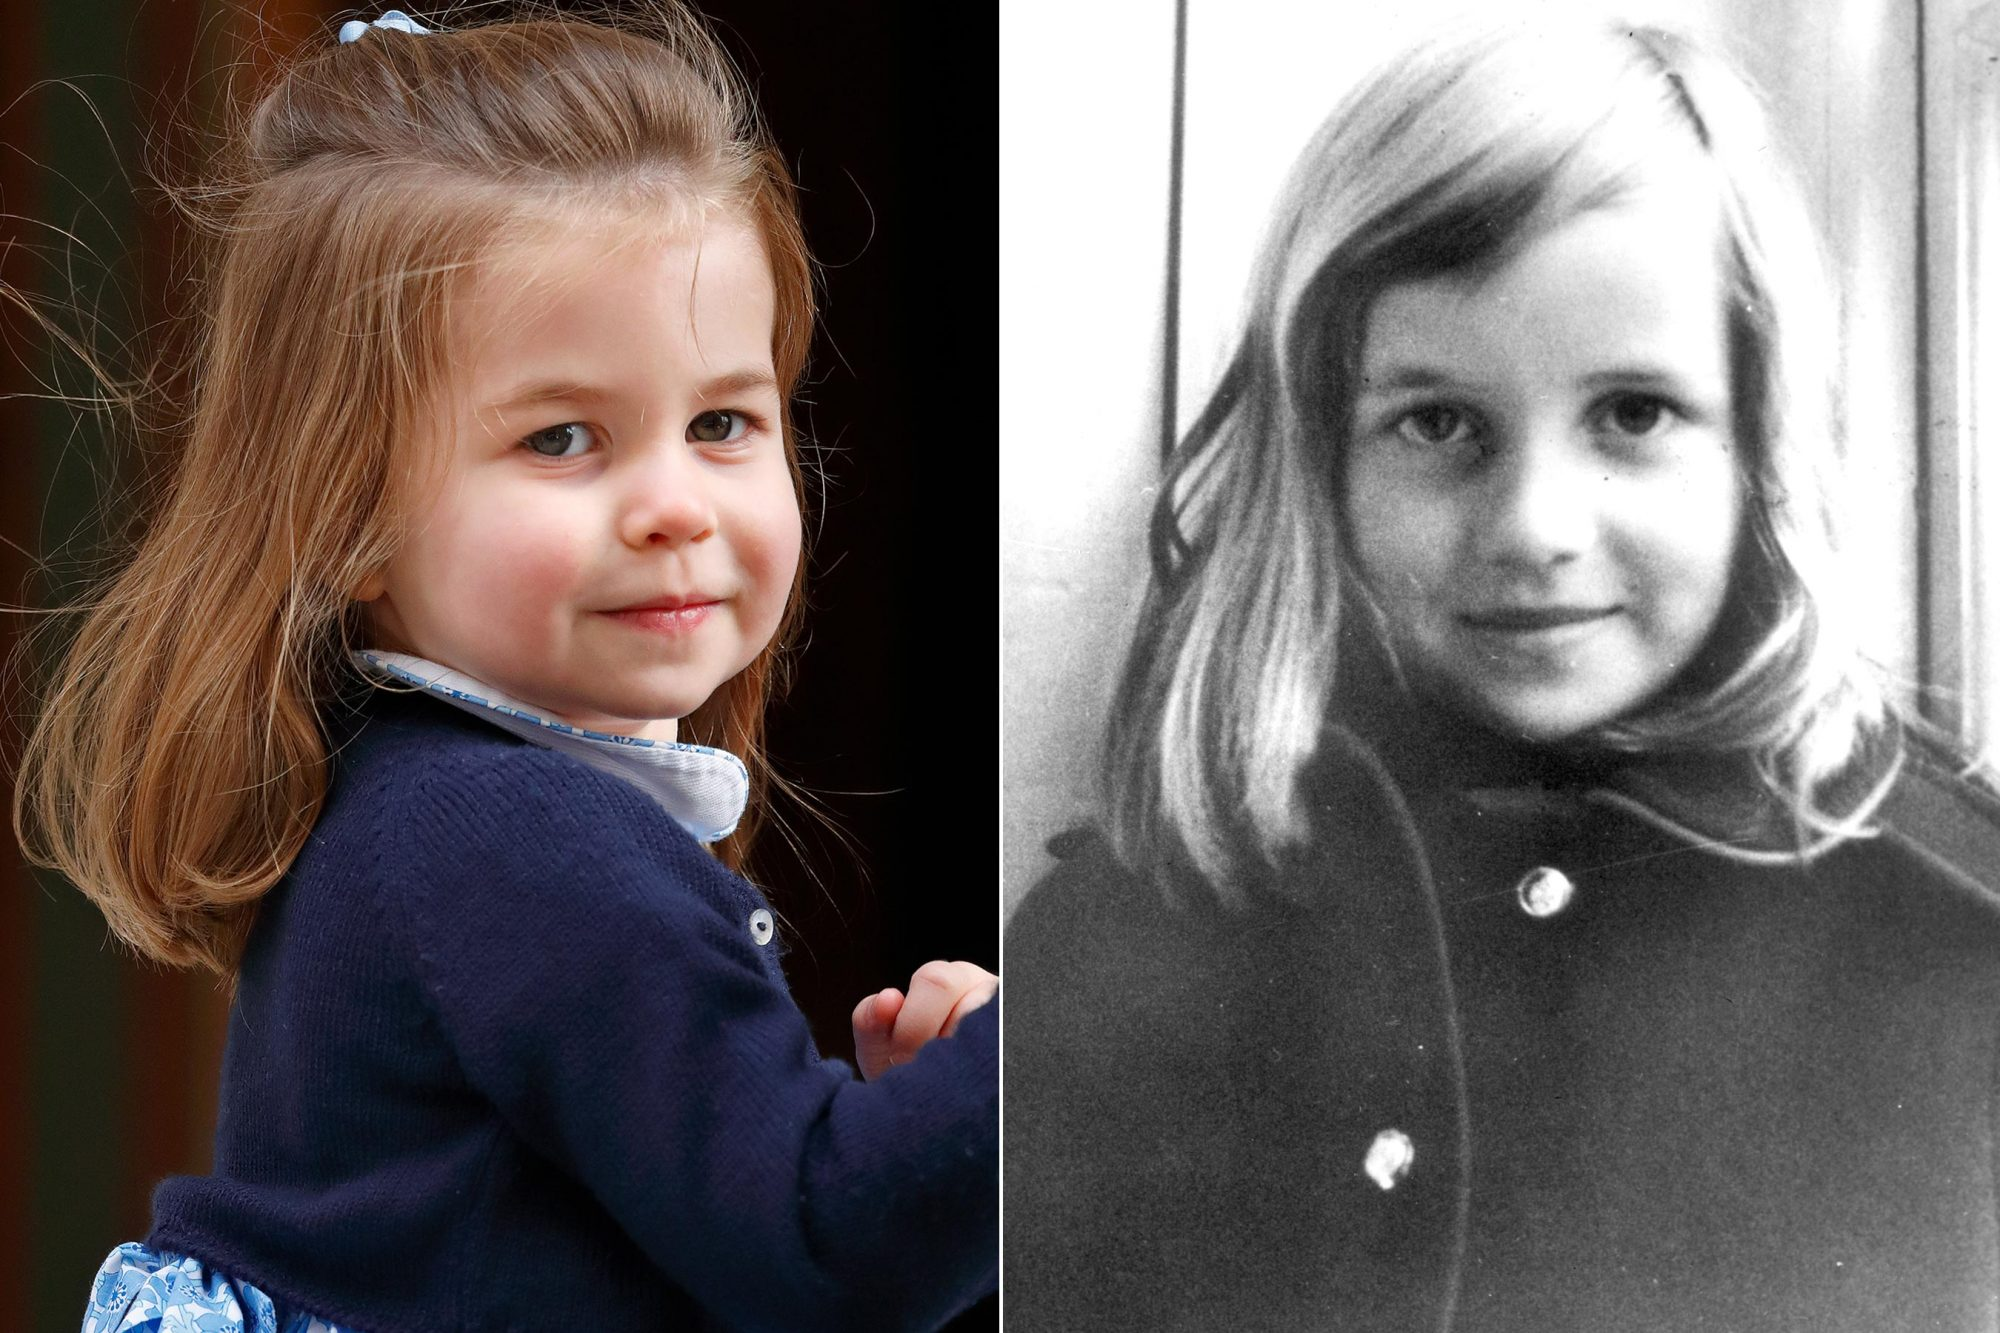 Princess Charlotte and young Lady Diana Spencer